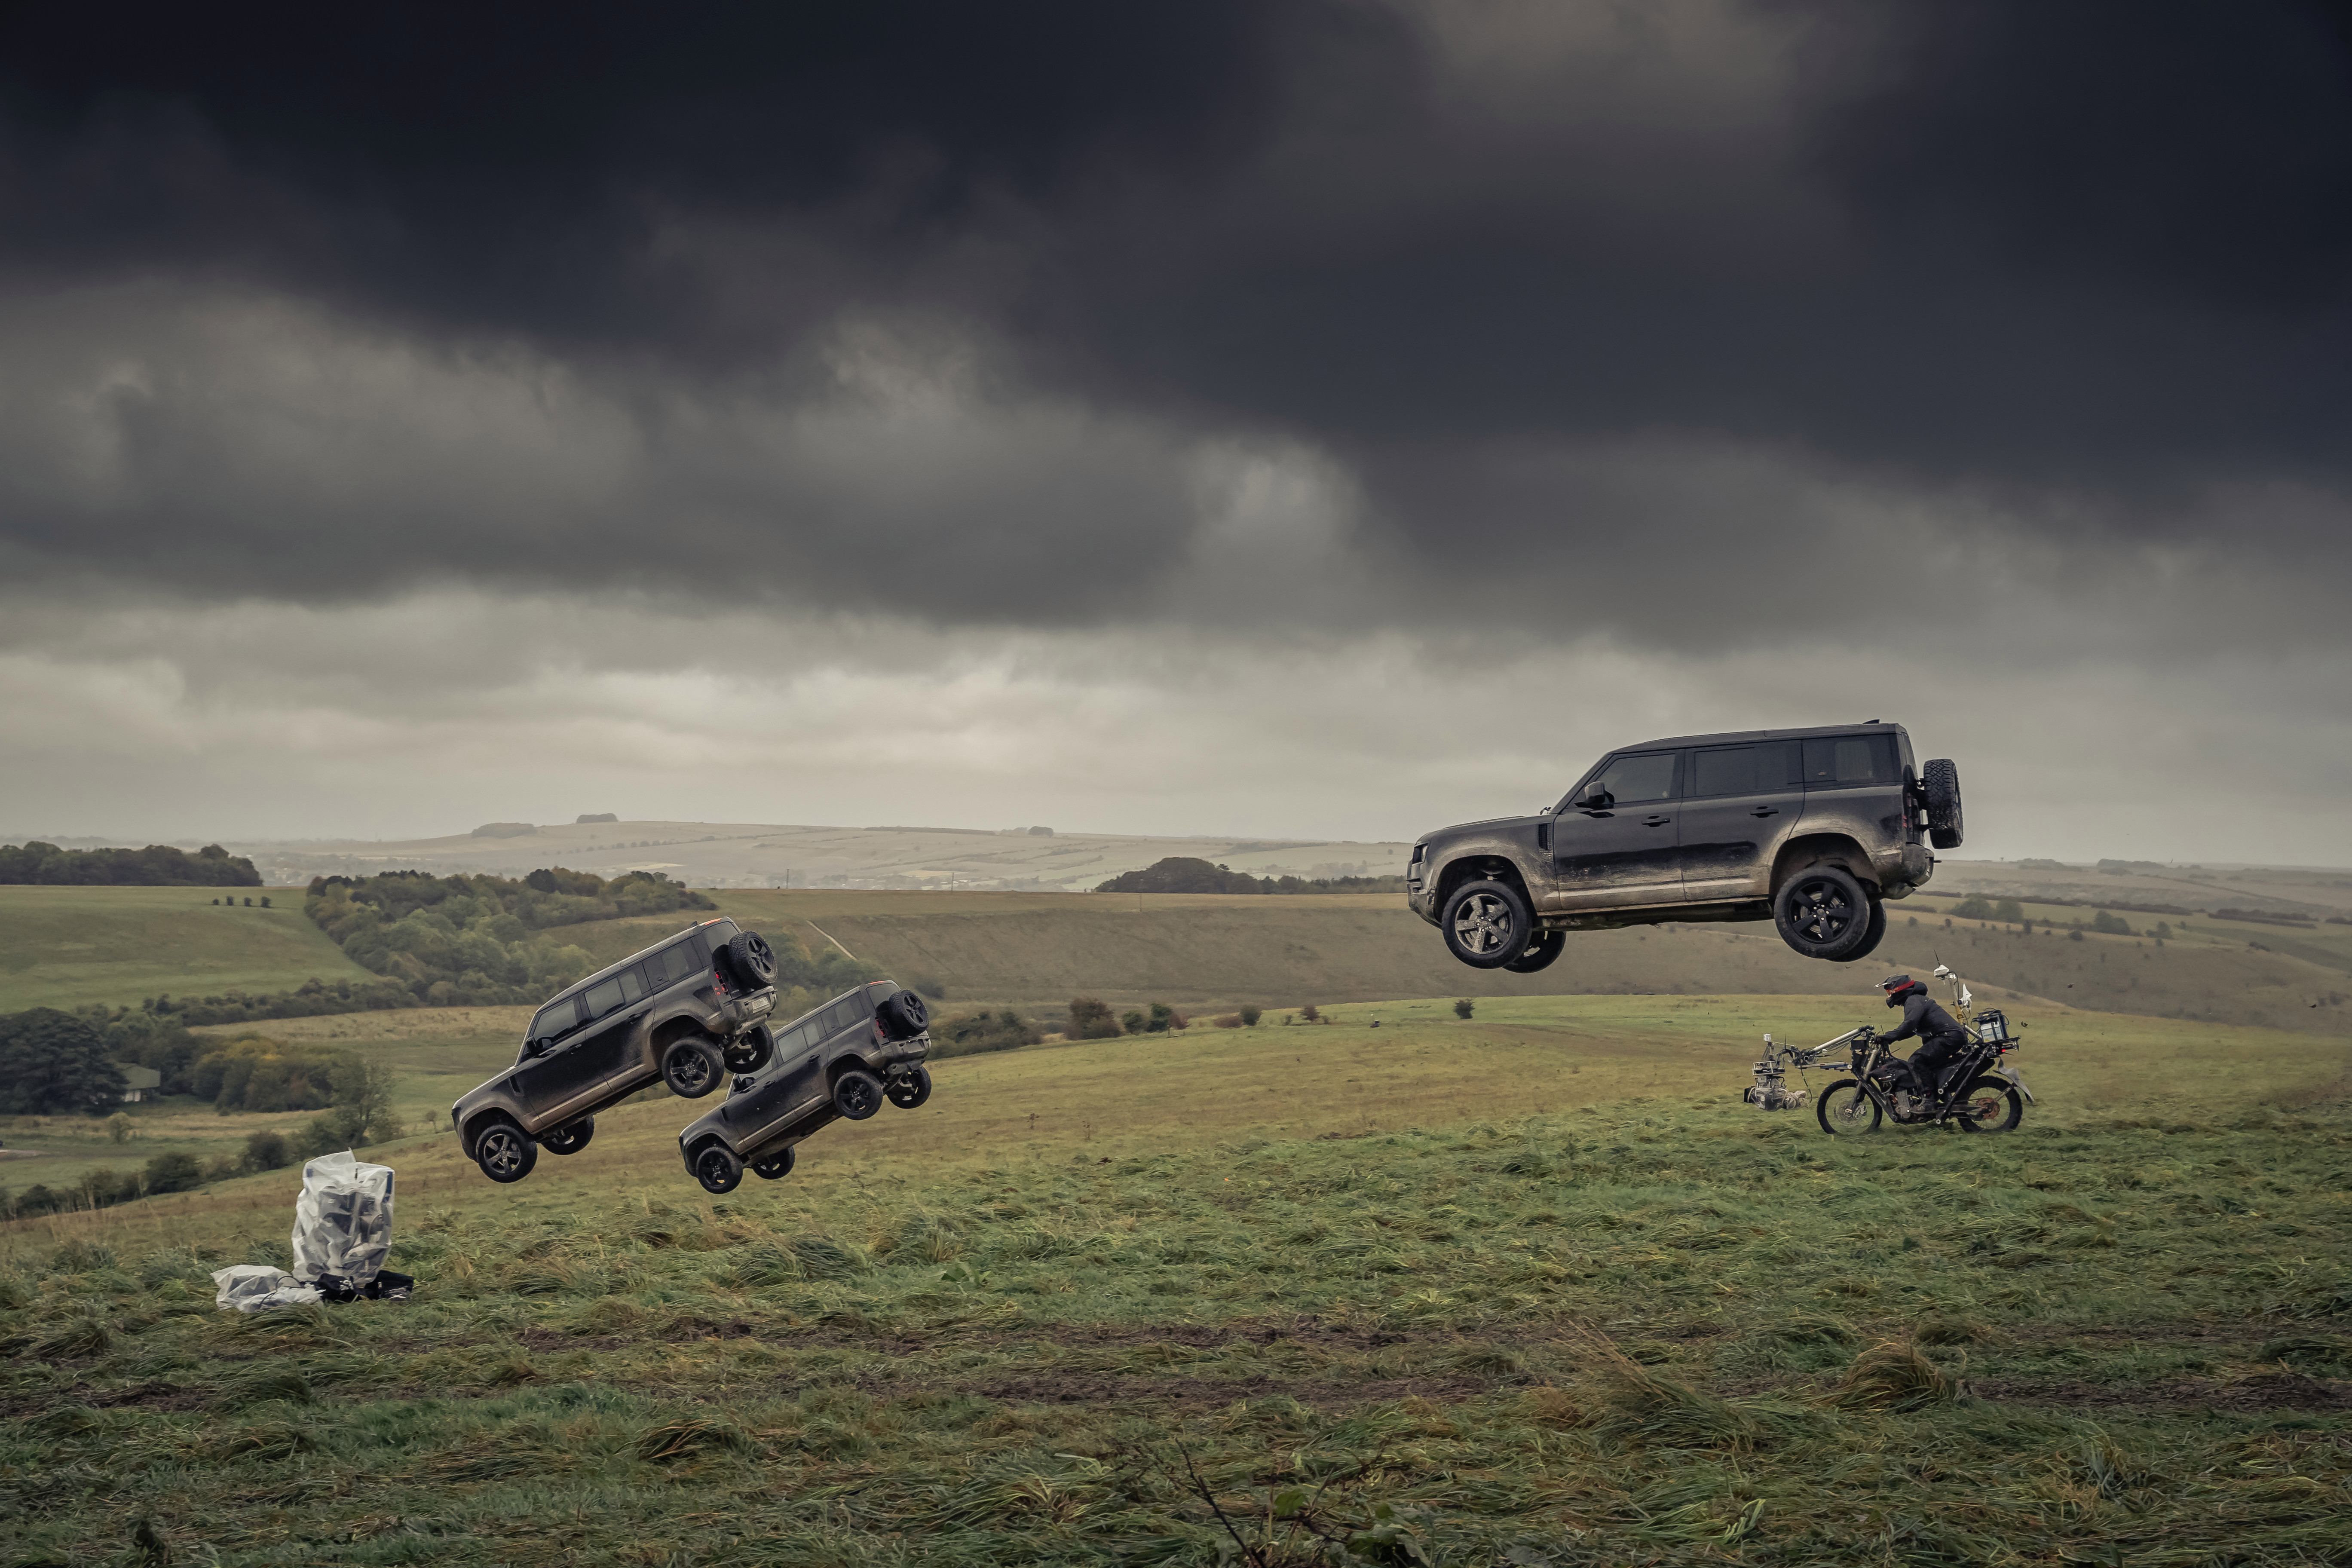 The Land Rover Defender hurtles through the air in the behind-the-scenes look at No Time To Die